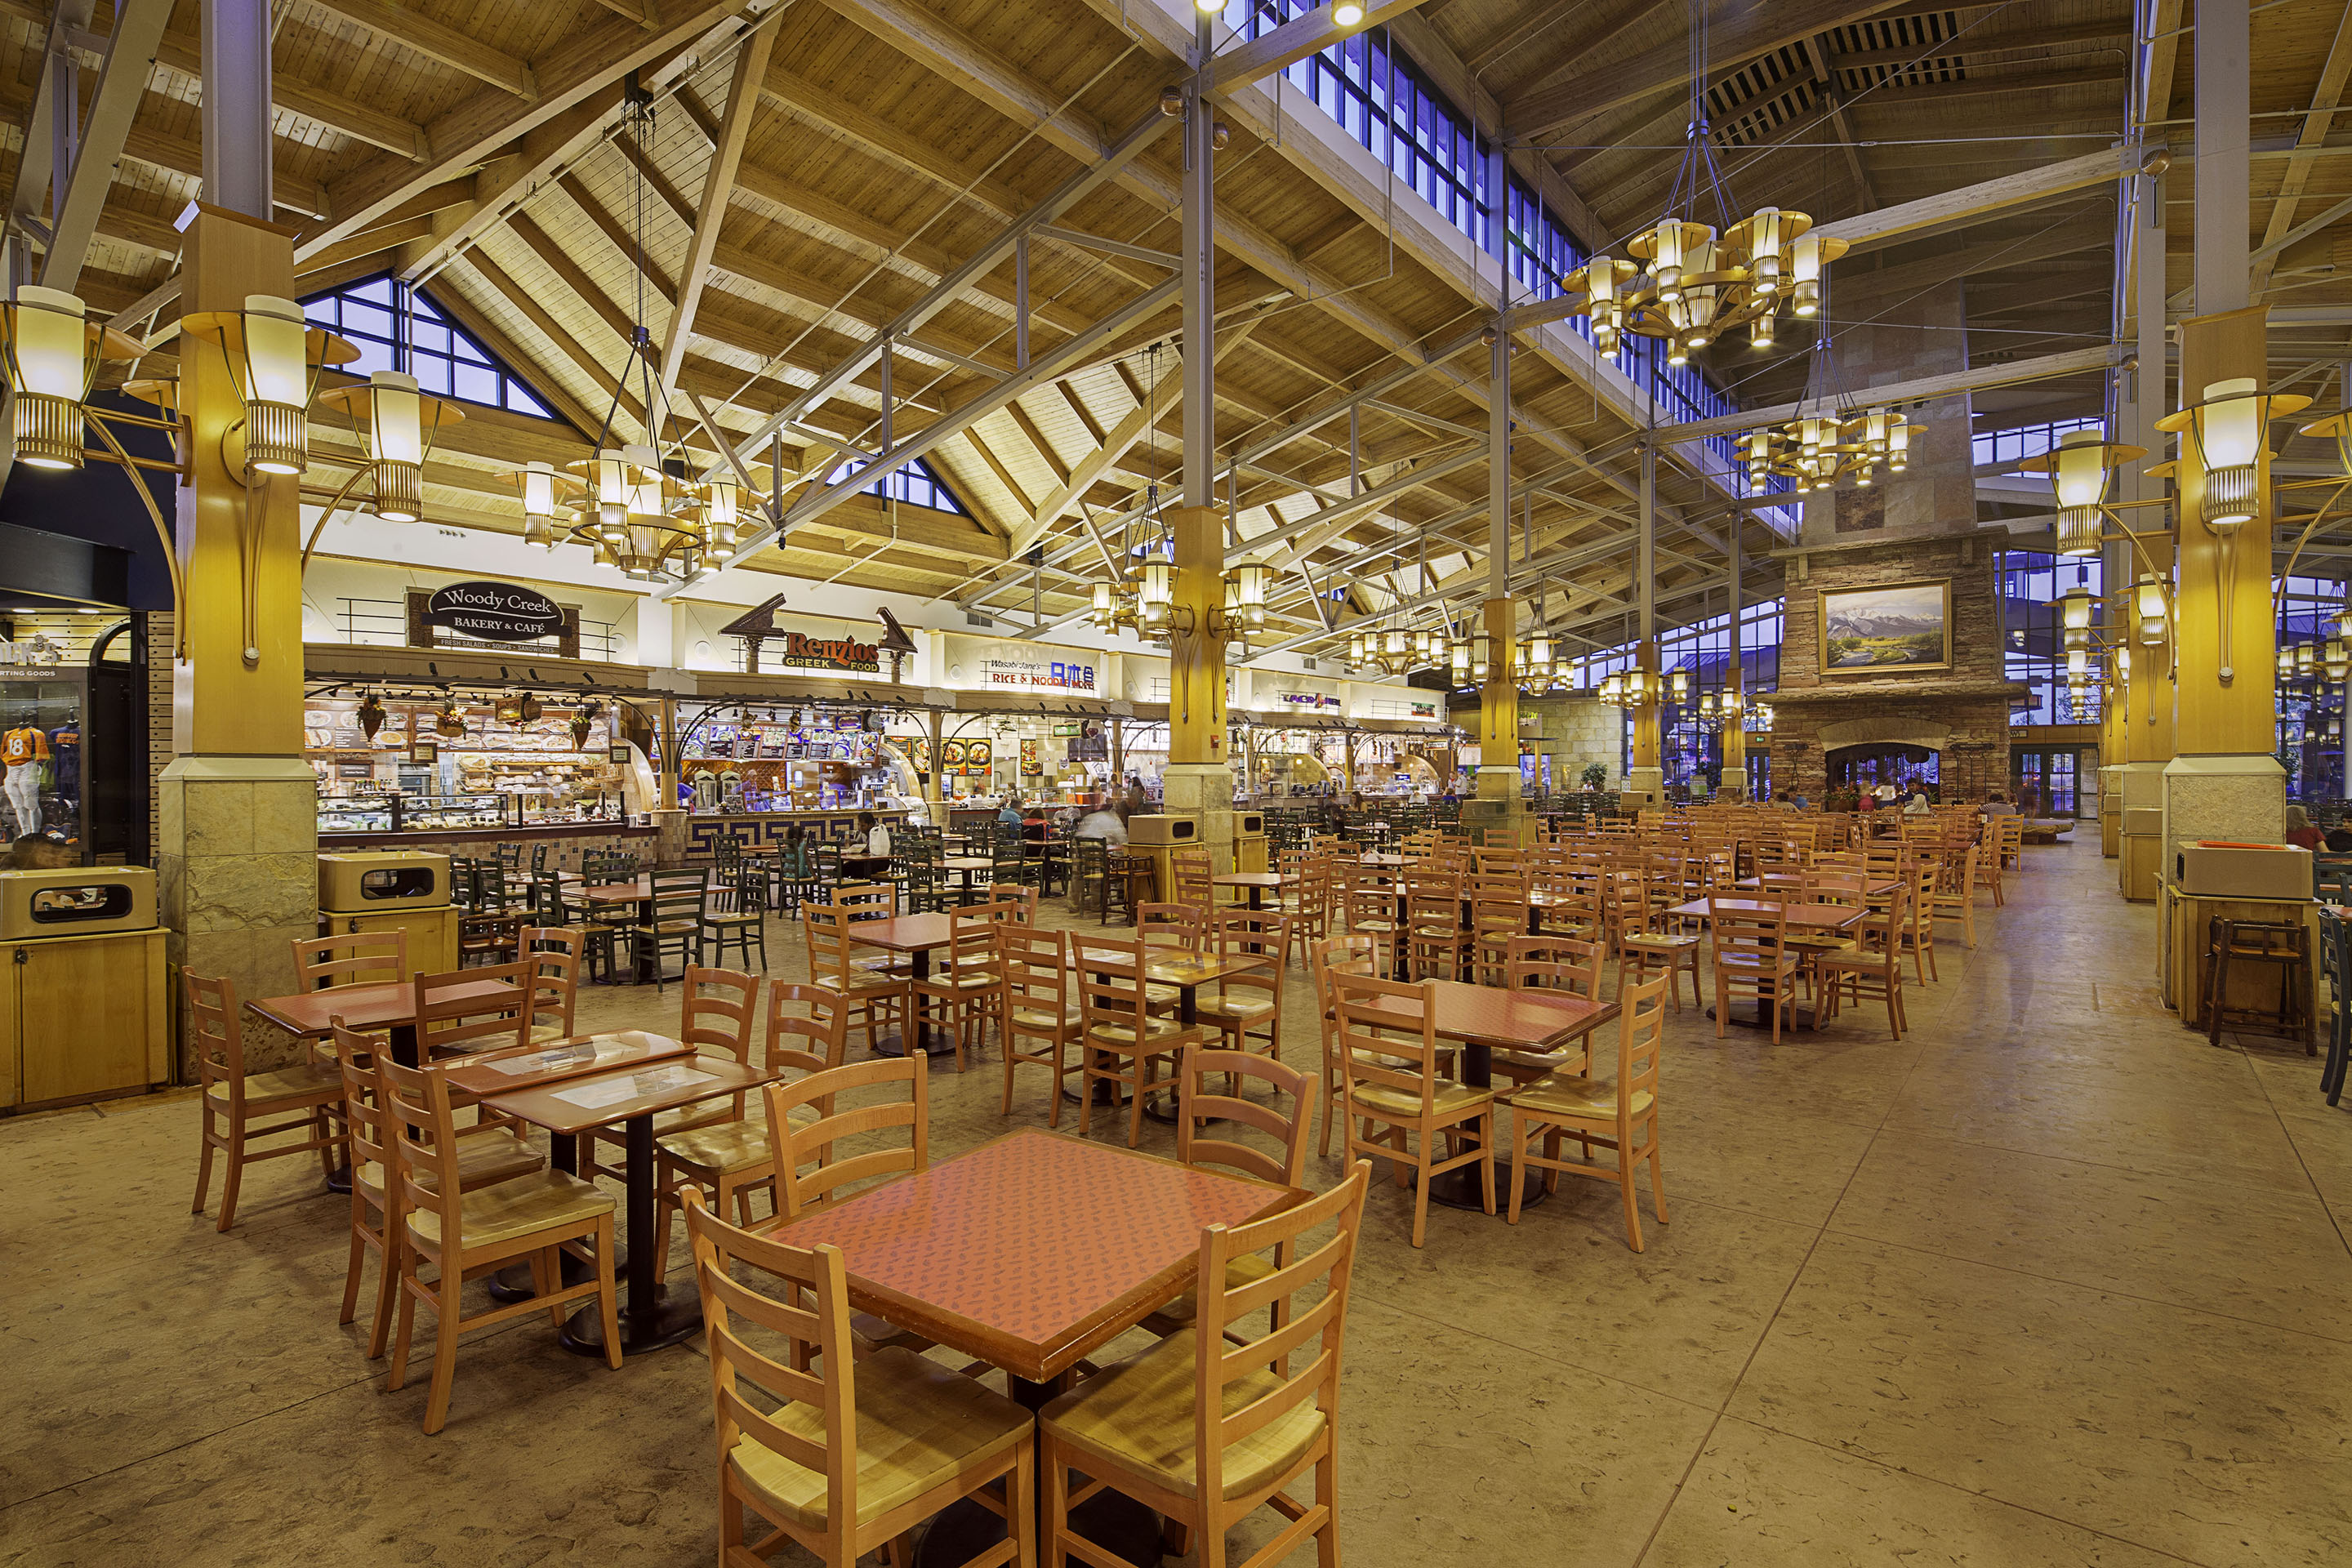 The Park Meadows food court is filled with tables and chairs with a variety of dining options.